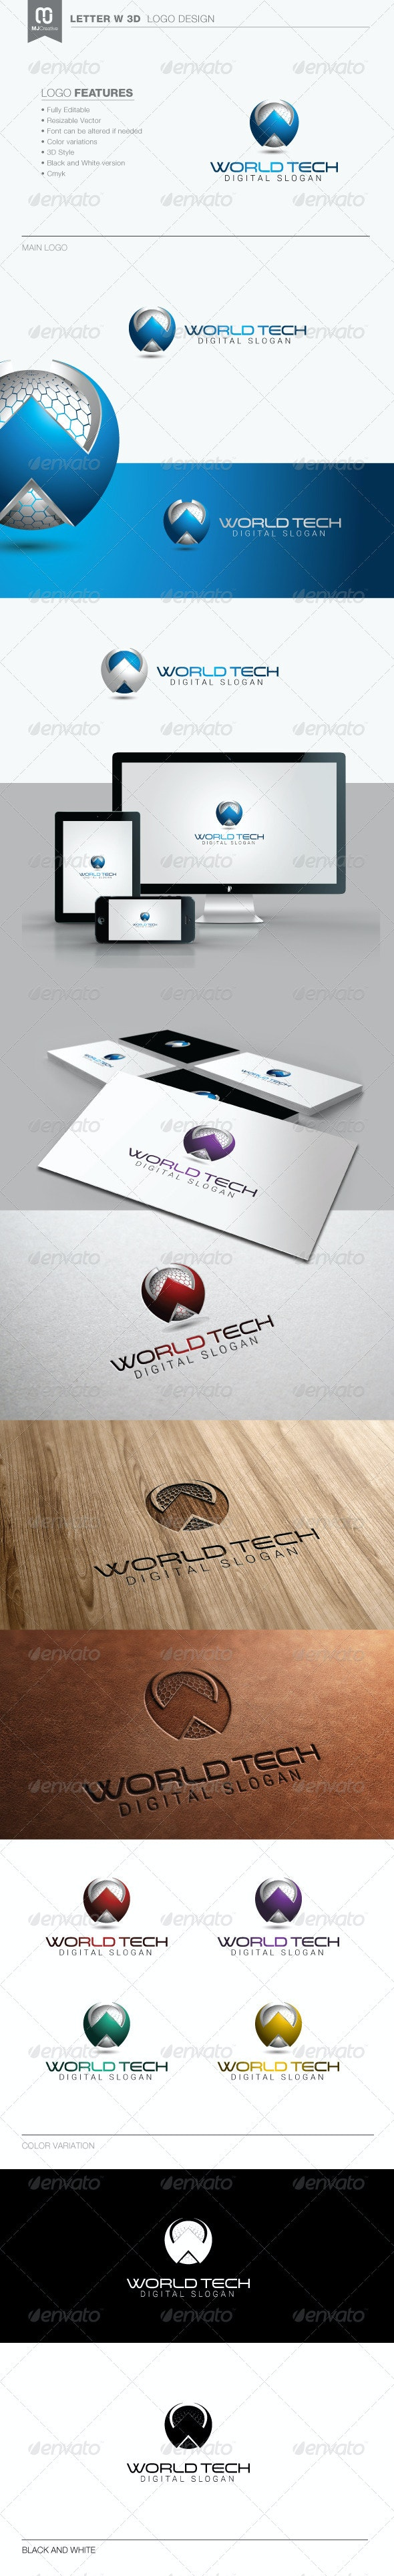 Letter W 3D Logo - 3 - 3d Abstract